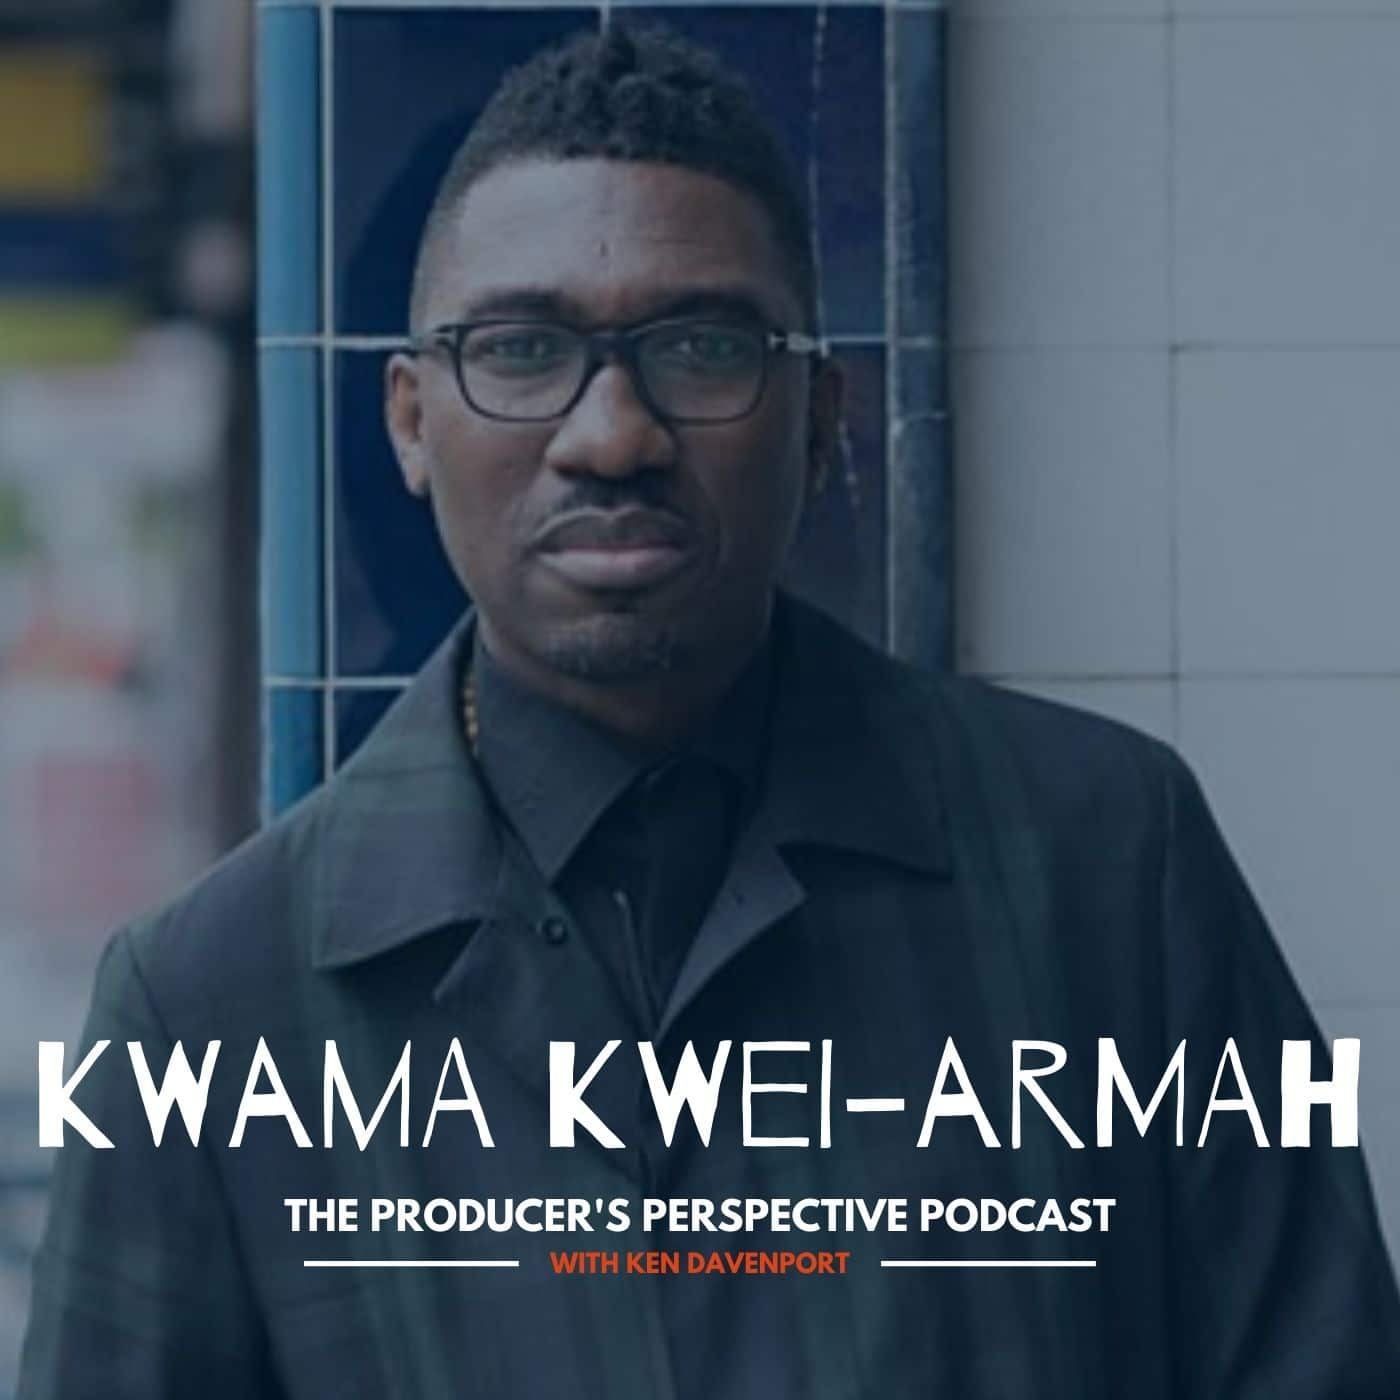 Ken Davenport's The Producer's Perspective Podcast Episode 138 - Kwame Kwei-Armah